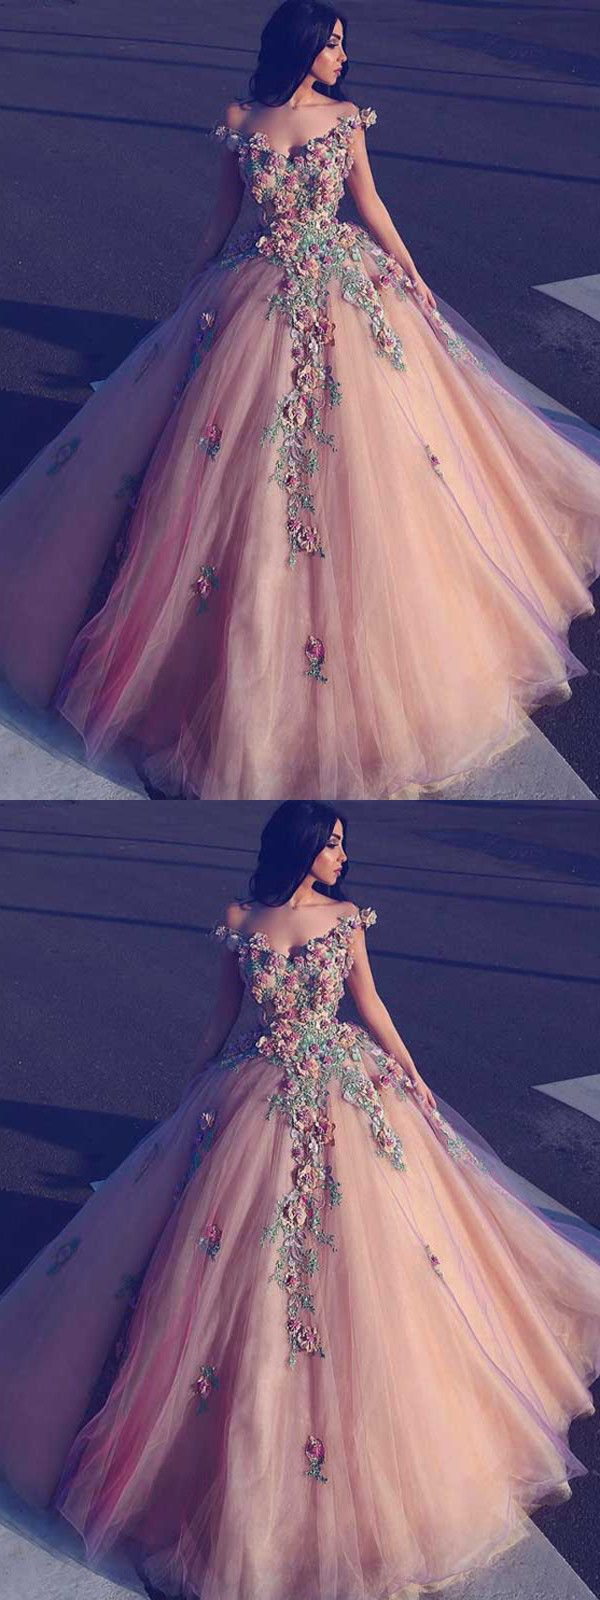 chic ball gowns pink prom dresses with applique african prom